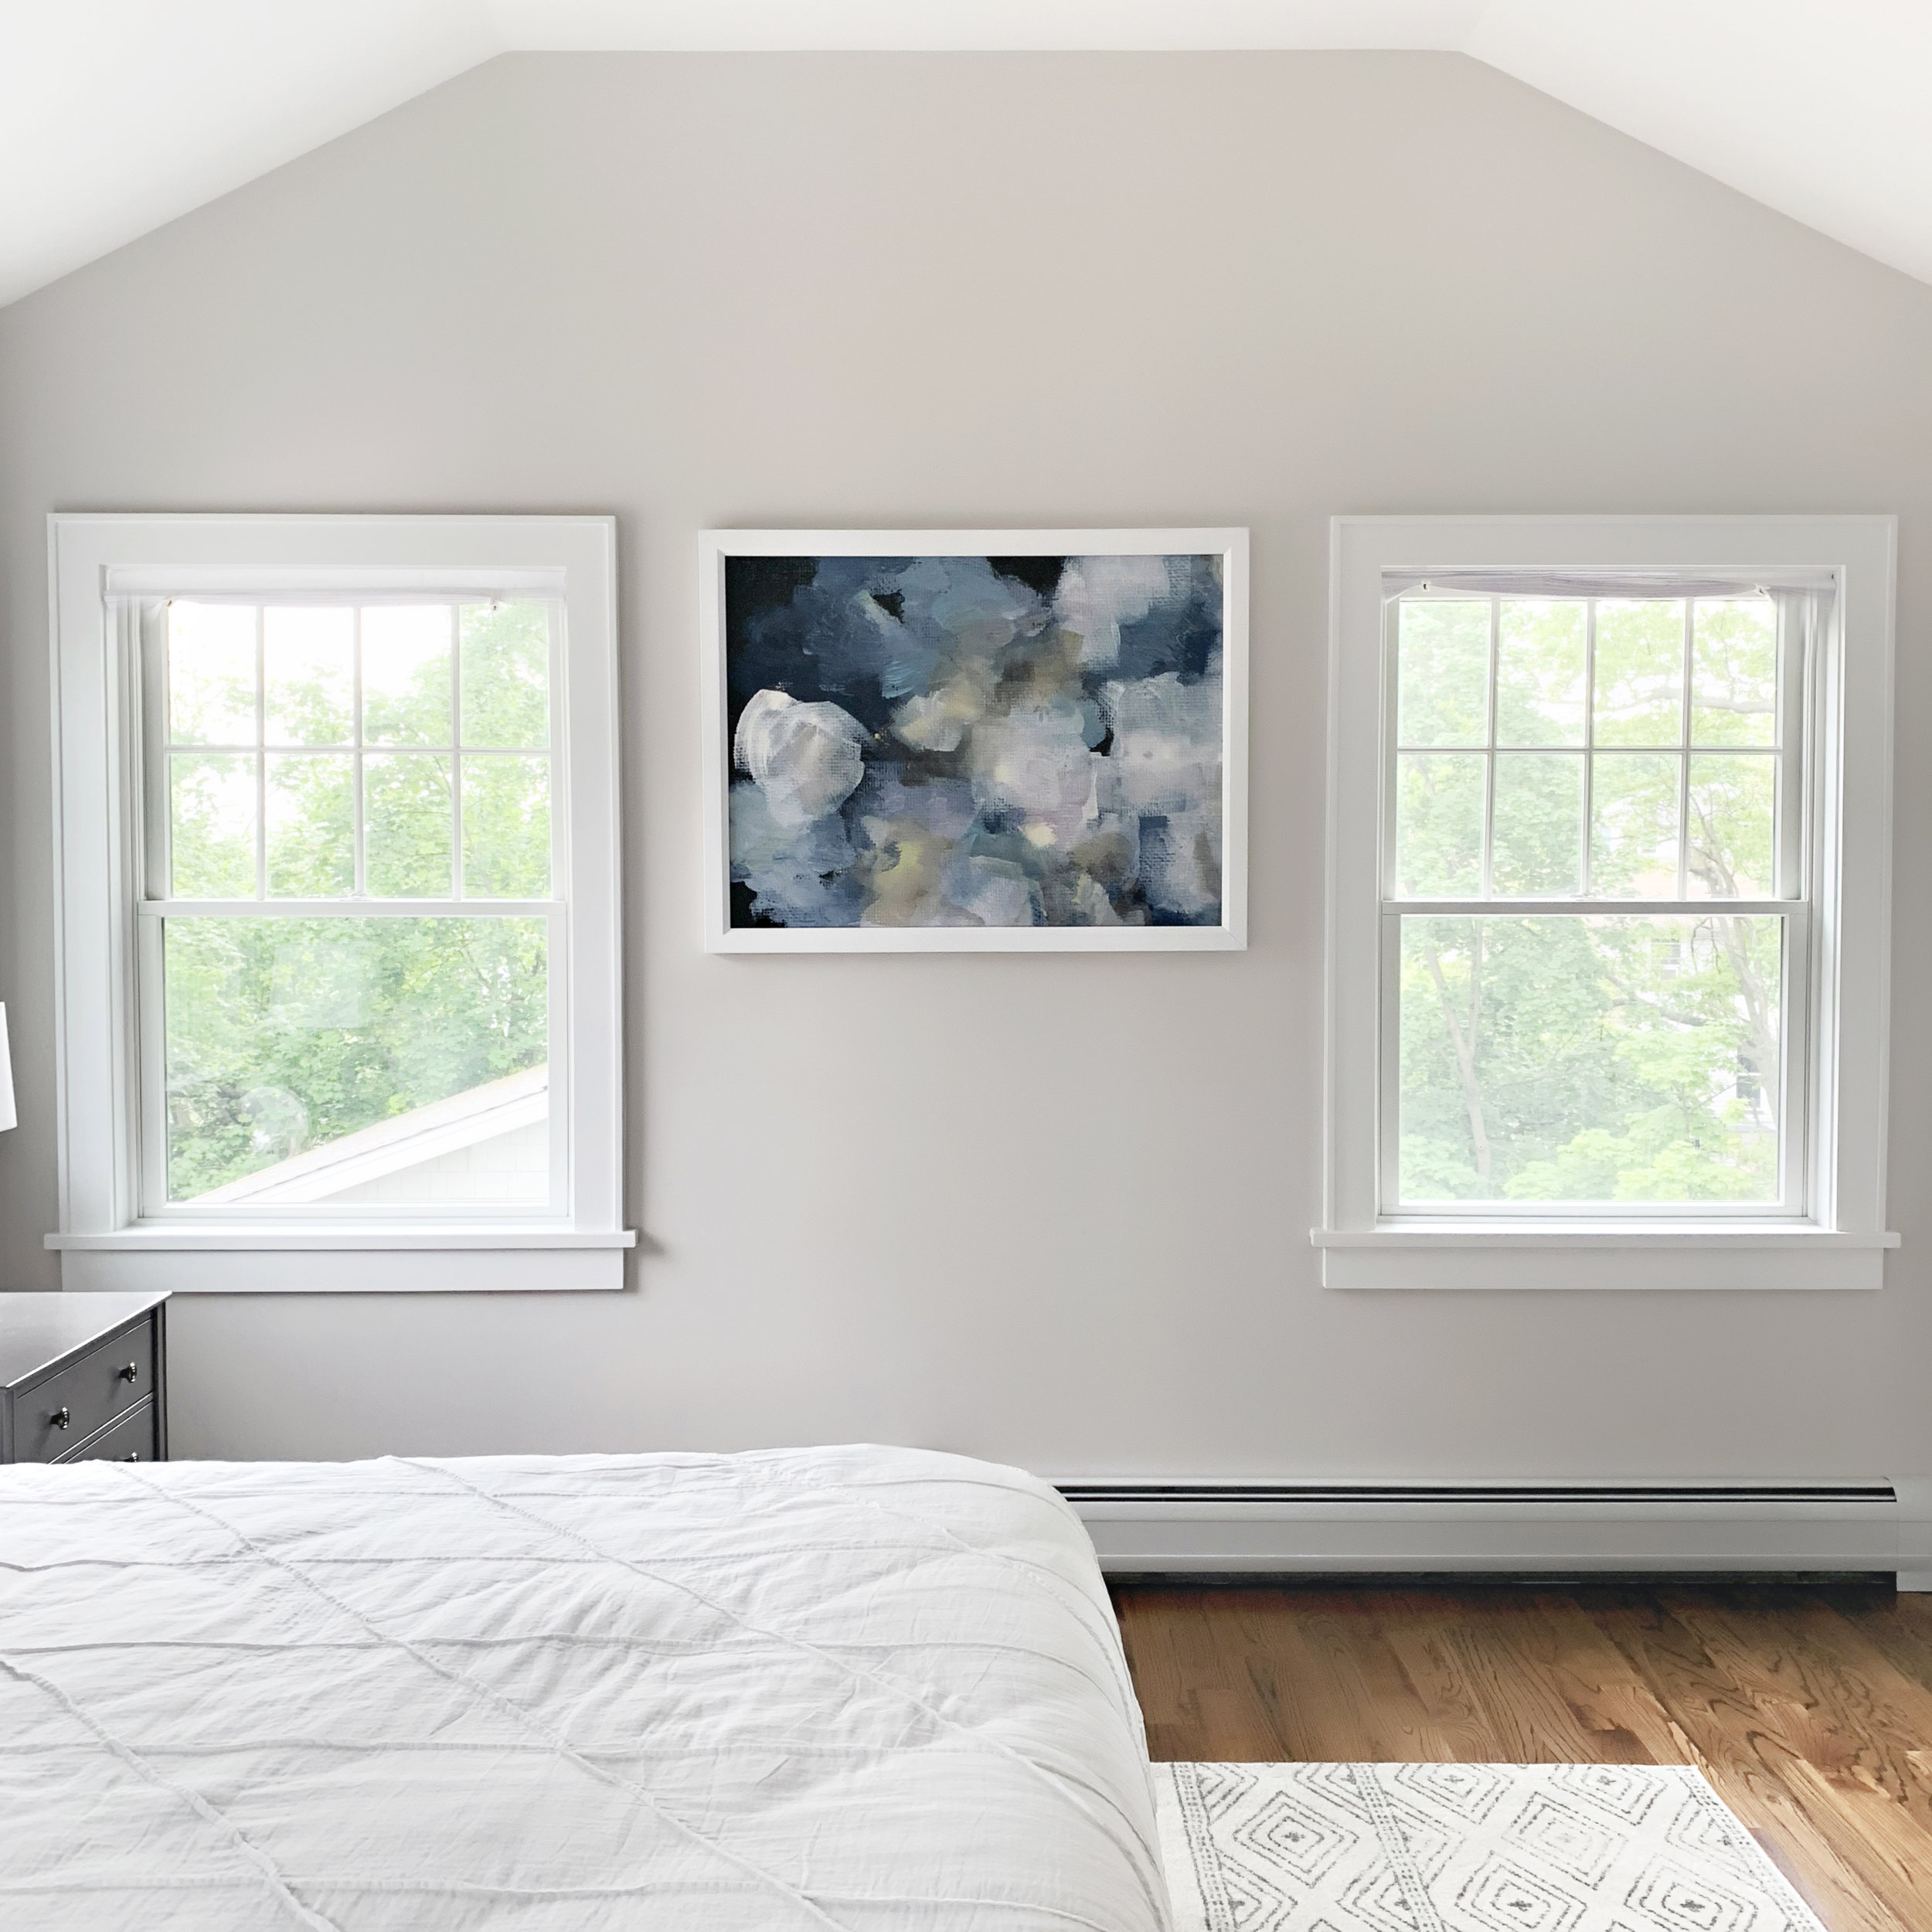 Copy of Art in Master Bedroom